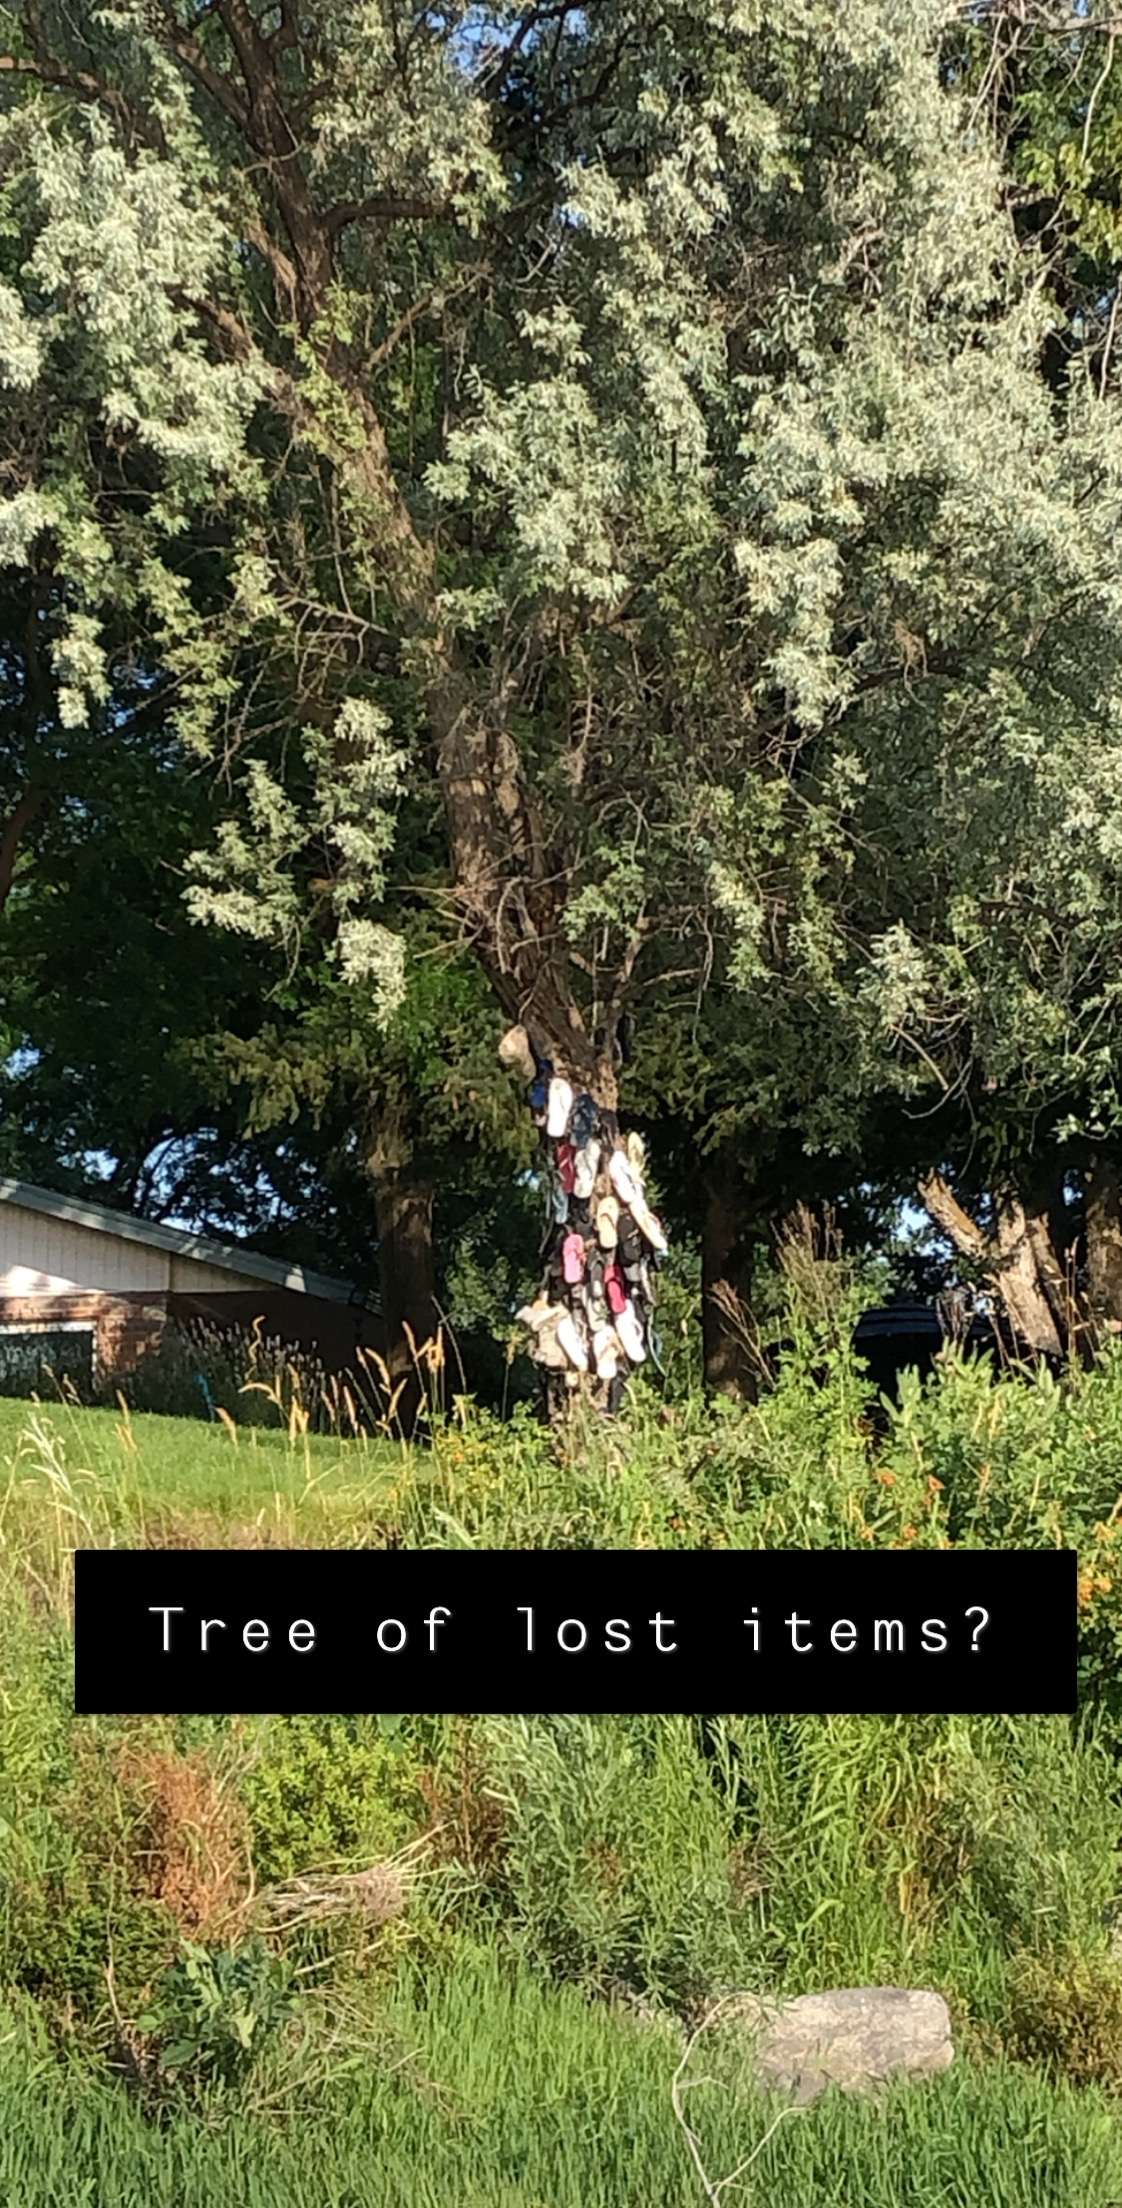 Snapchat image of a Tree Filled with Lost Items